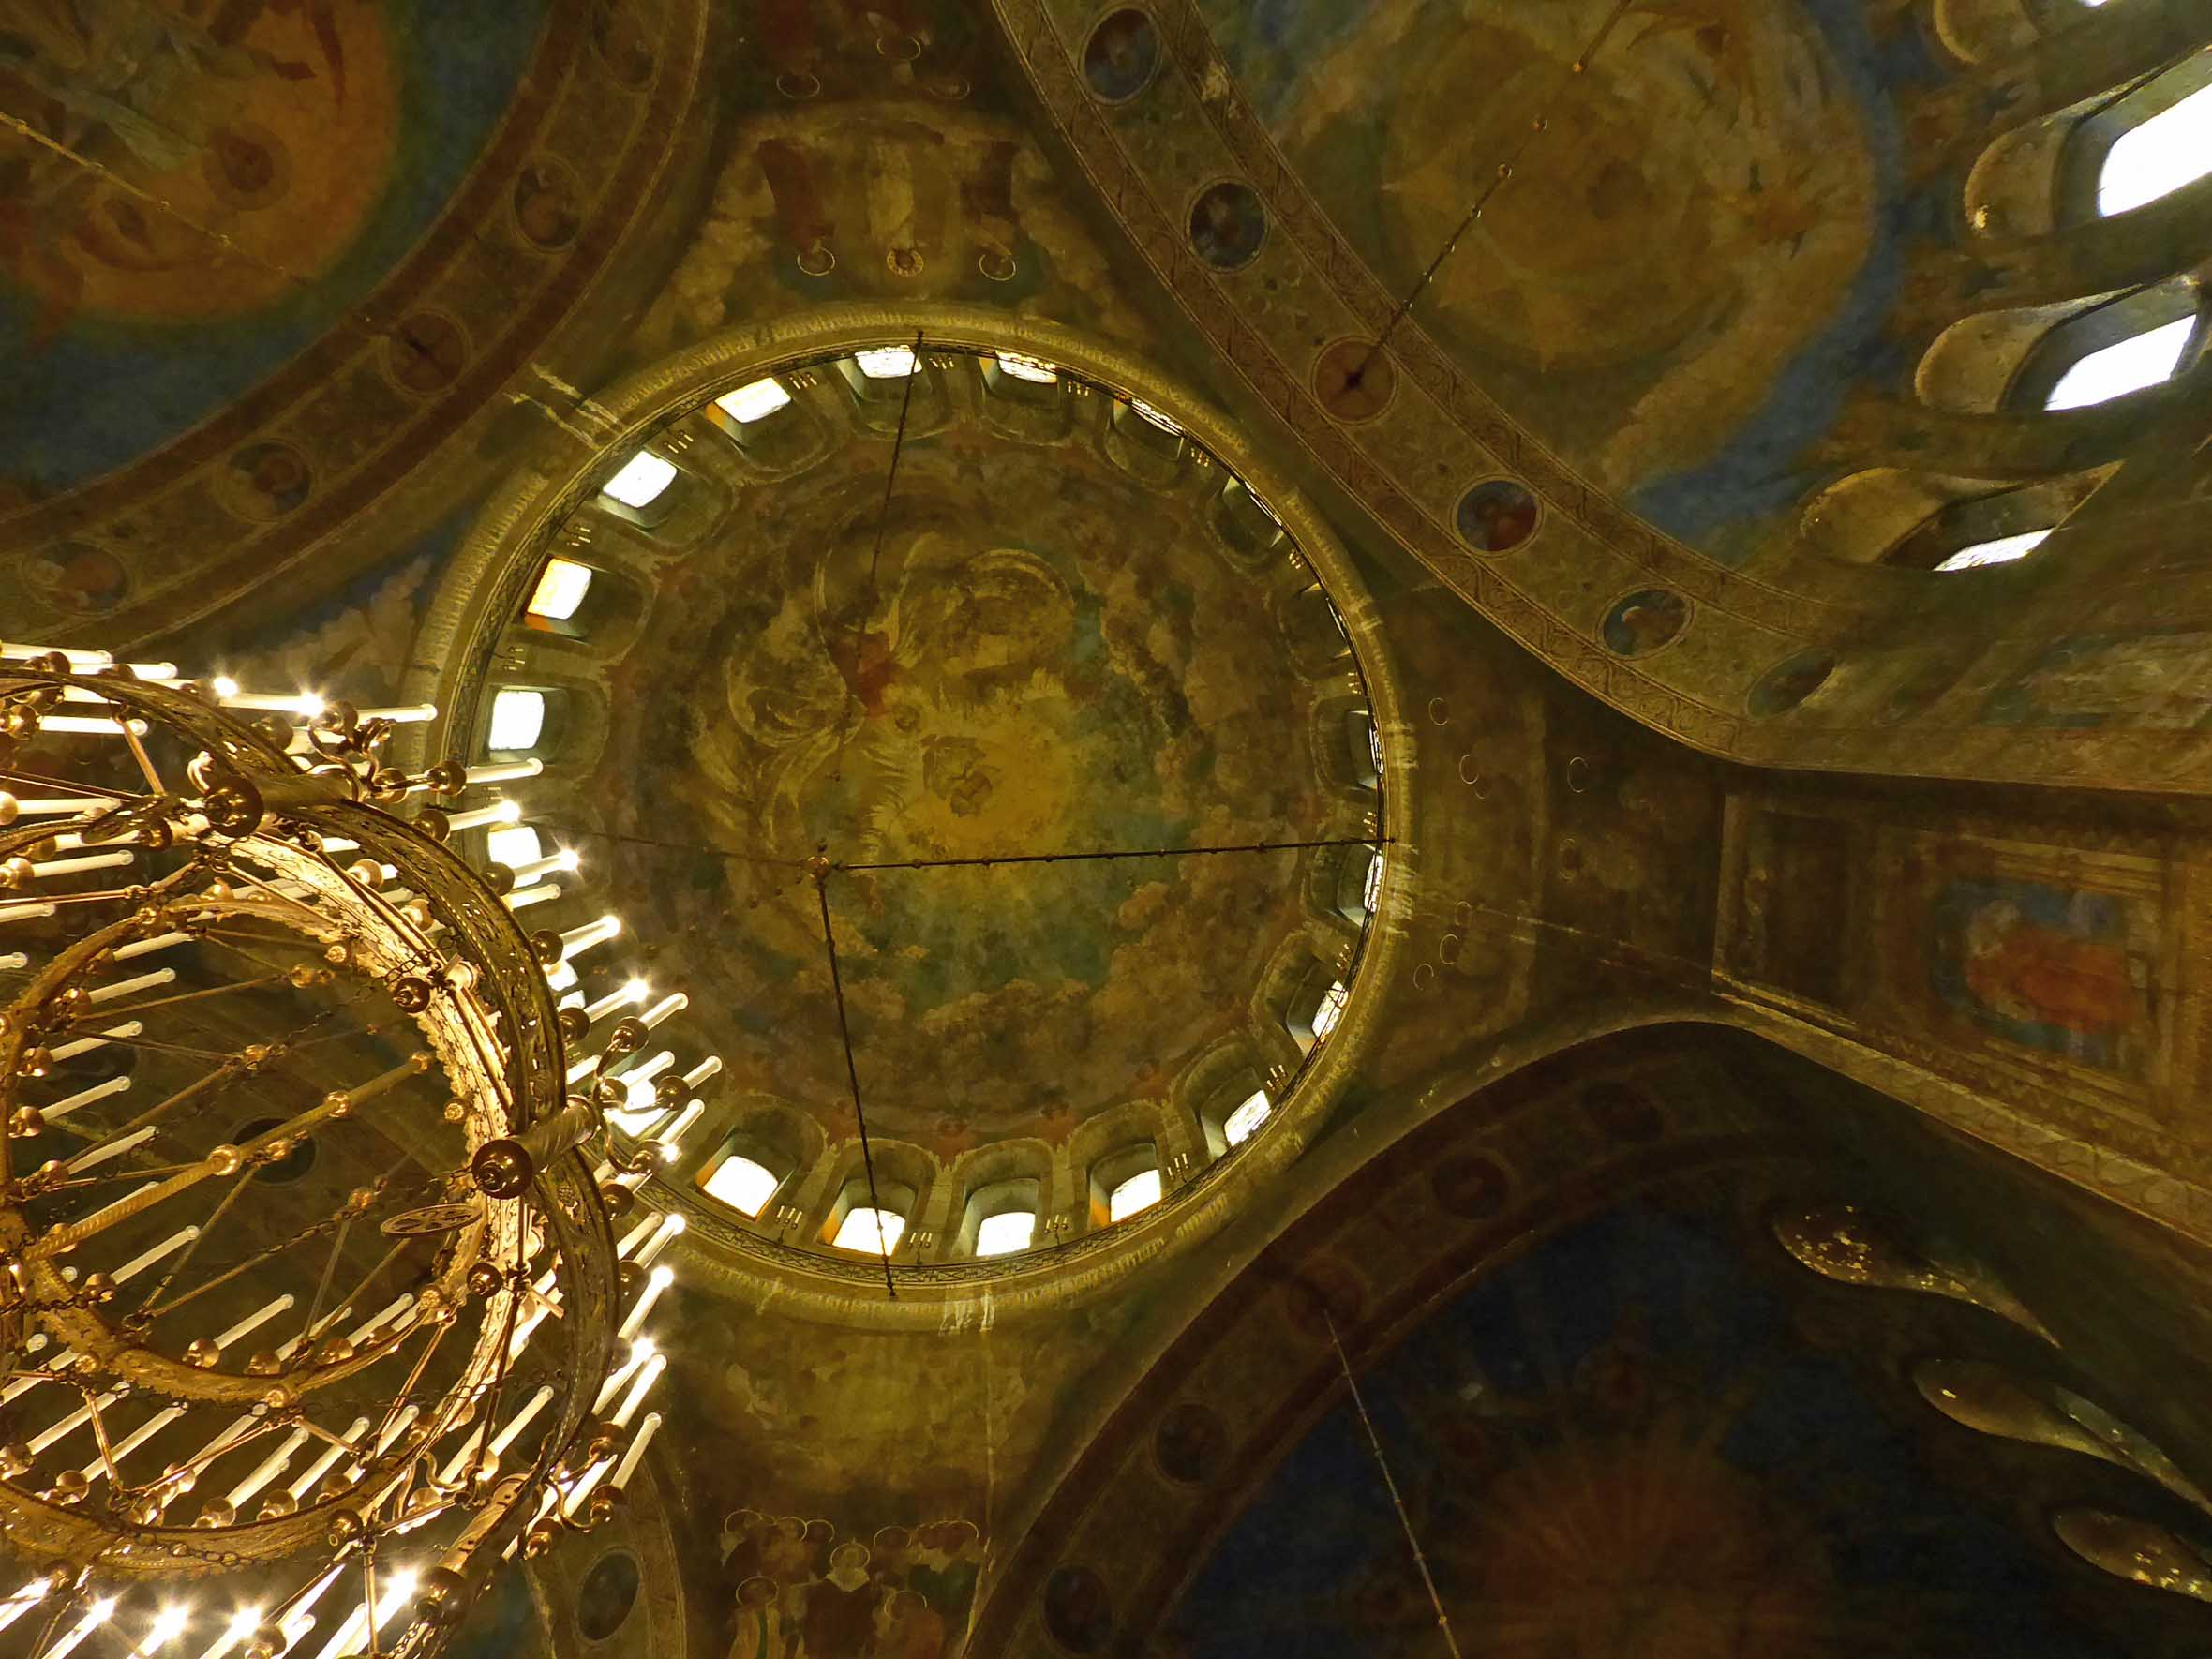 Inside the painted dome of an Orthodox cathedral